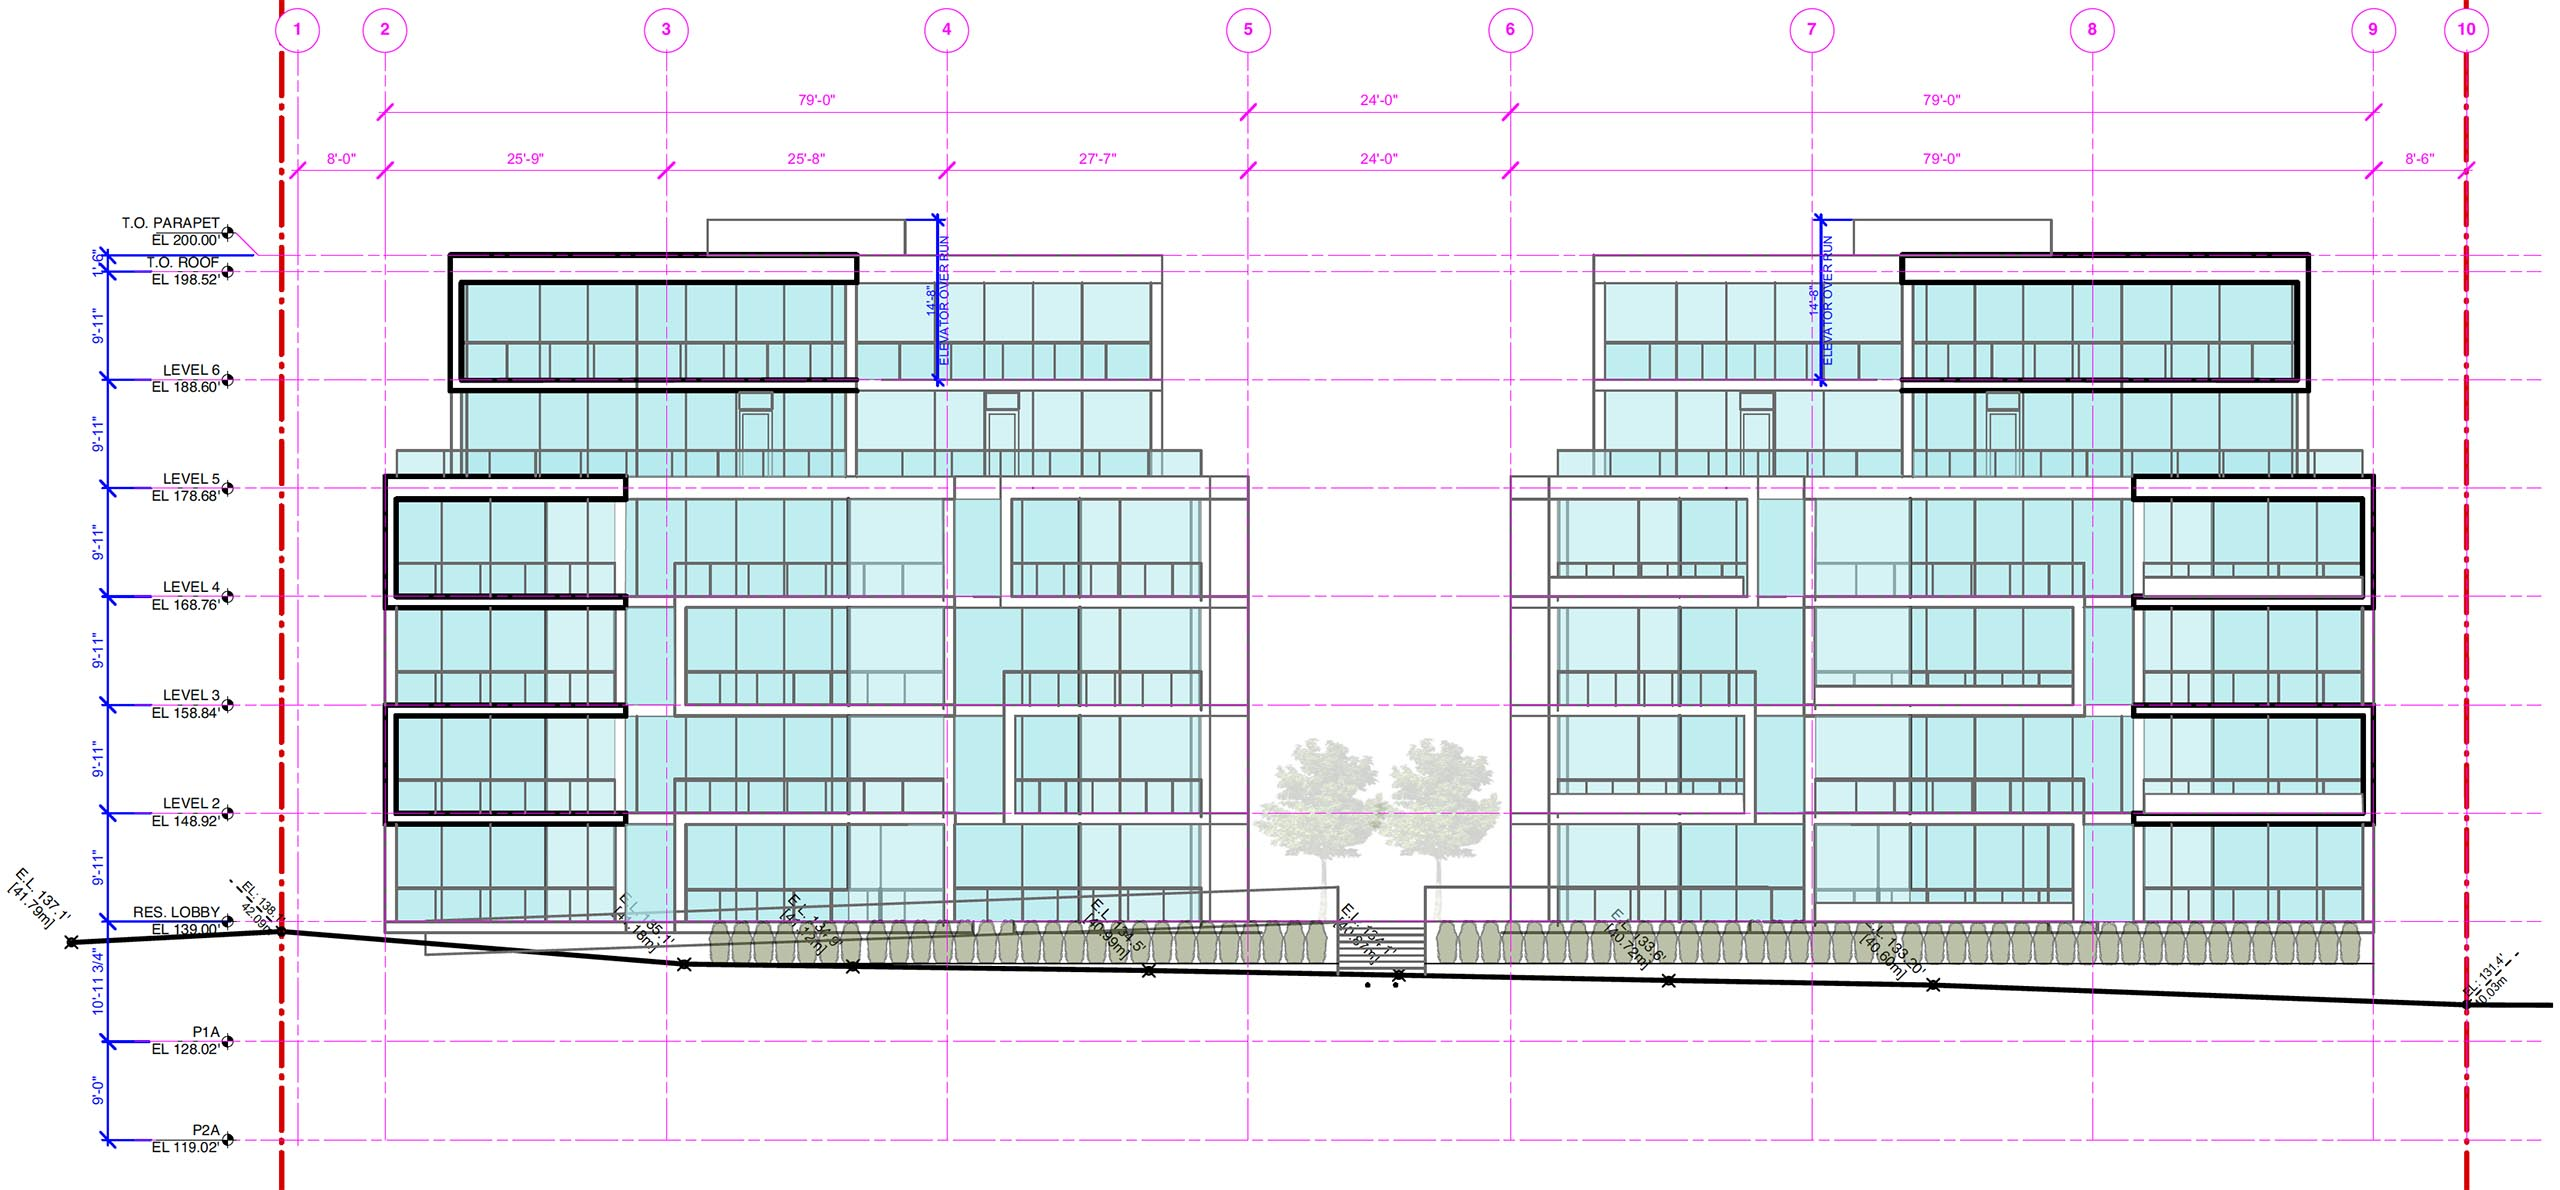 Cambie & 59th architectural drawing